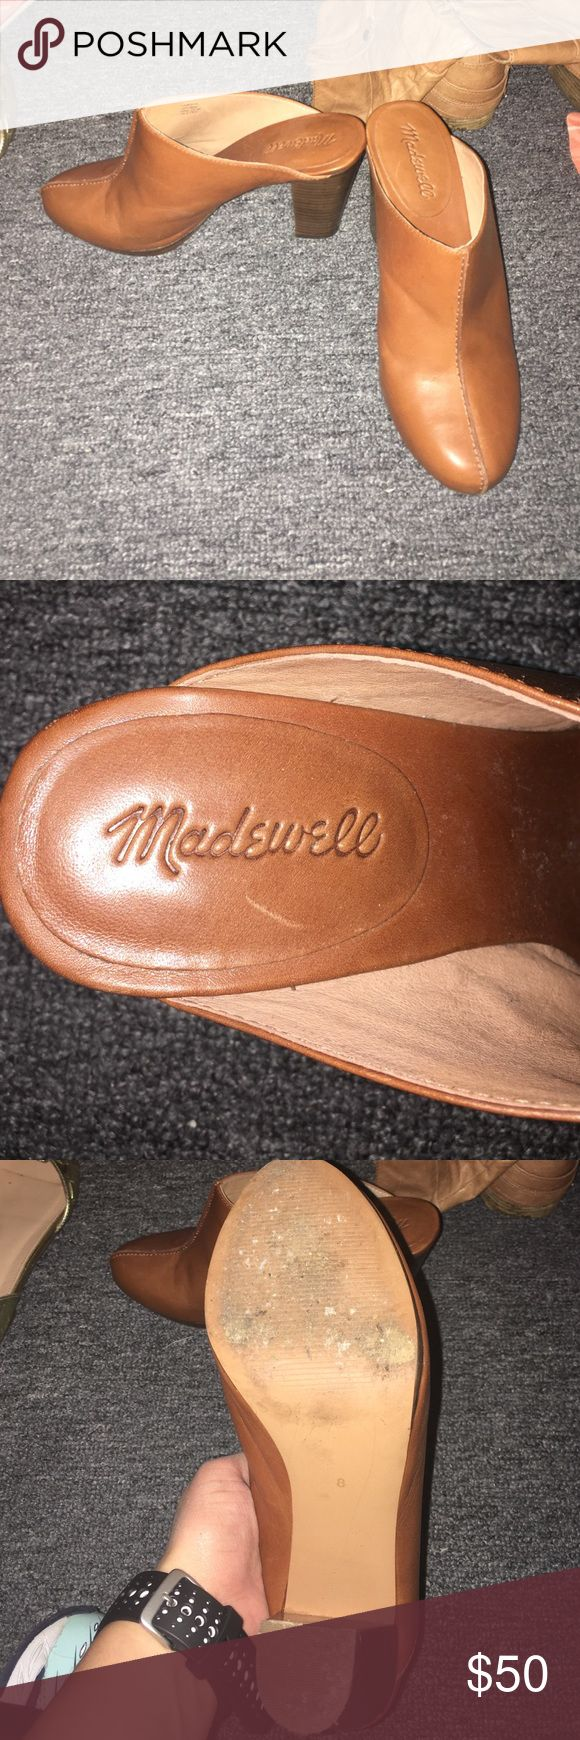 "Madewell Heeled Clogs Worn once! Made of high quality brown leather with a 4"" stacked heel. Great with jeans and a sweater or a shirt dress! Madewell Shoes Mules & Clogs"